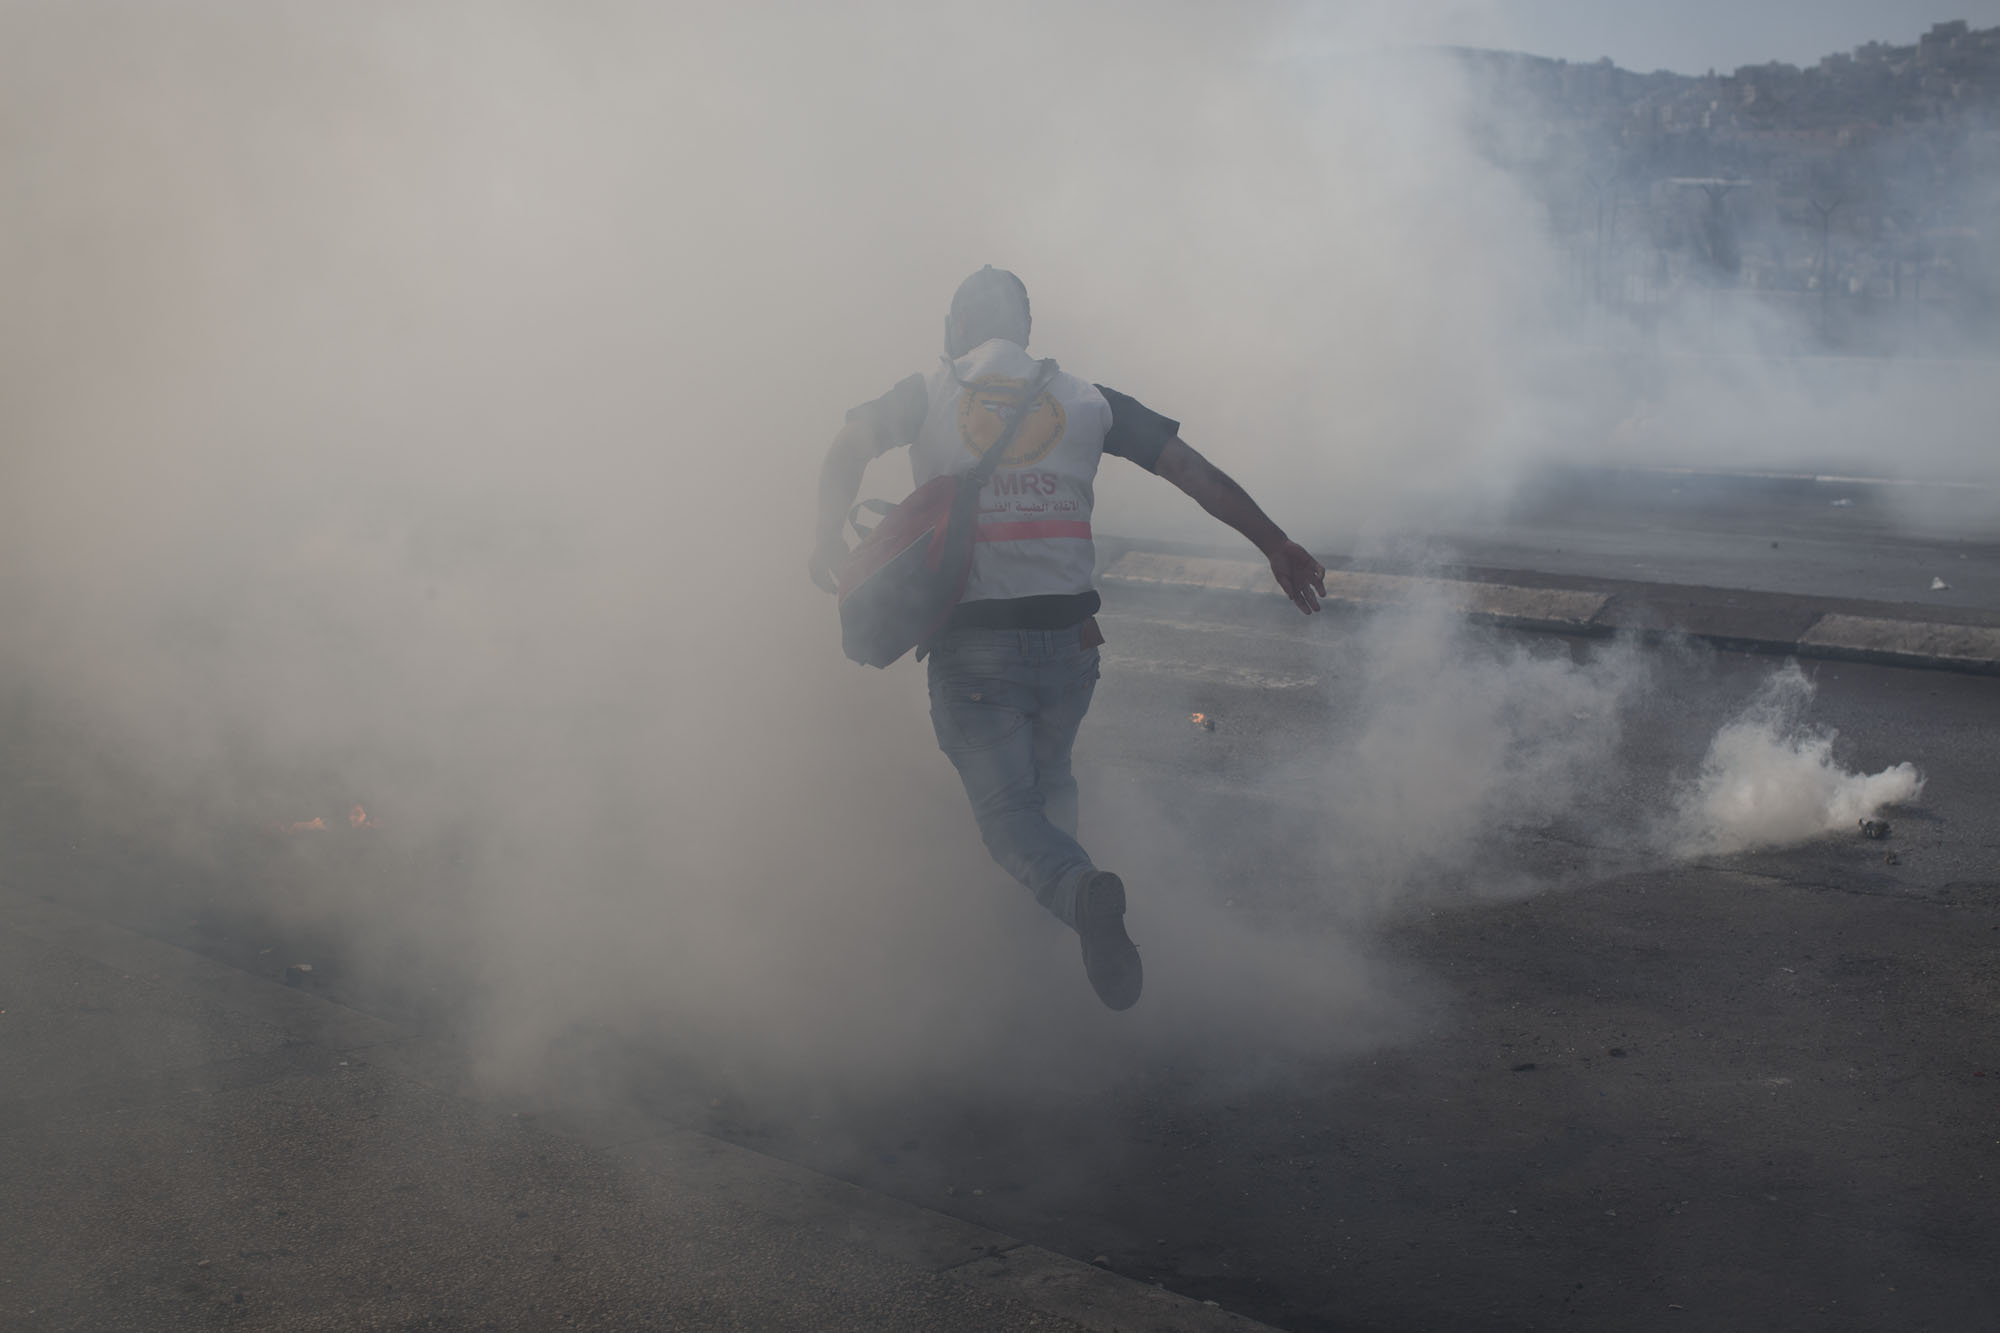 Palestinian first responders work under difficult conditions. They come to clashes prepared with gas masks. Several volunteers have been injured in the line of duty